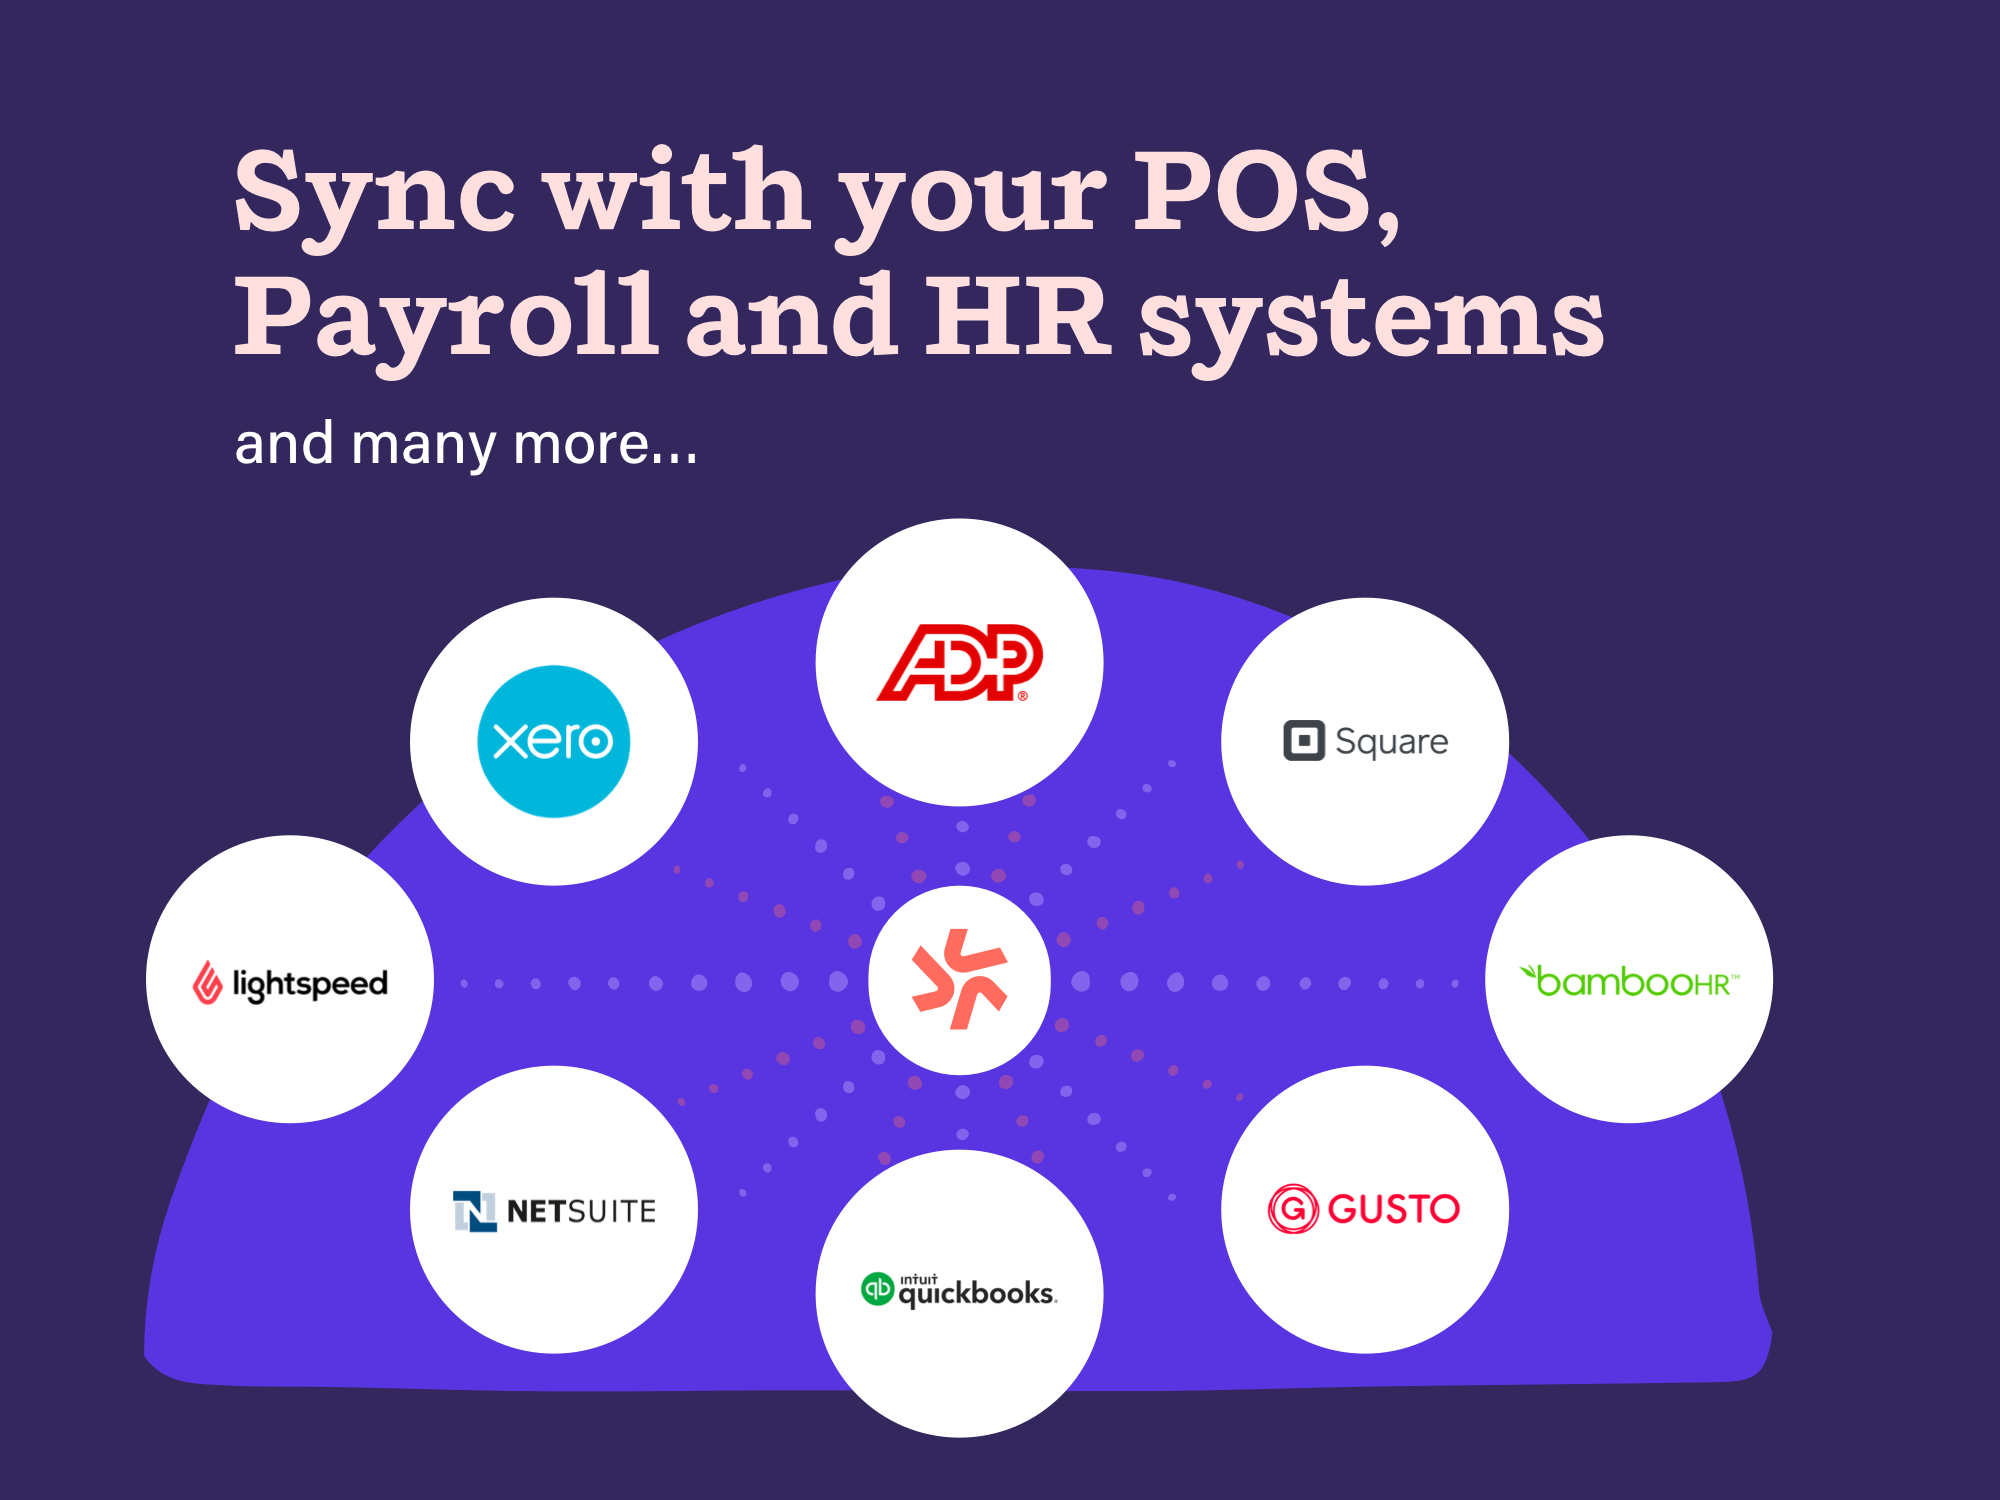 Build a connected business: Deputy integrates with your Point of Sale, HR & Payroll Providers.